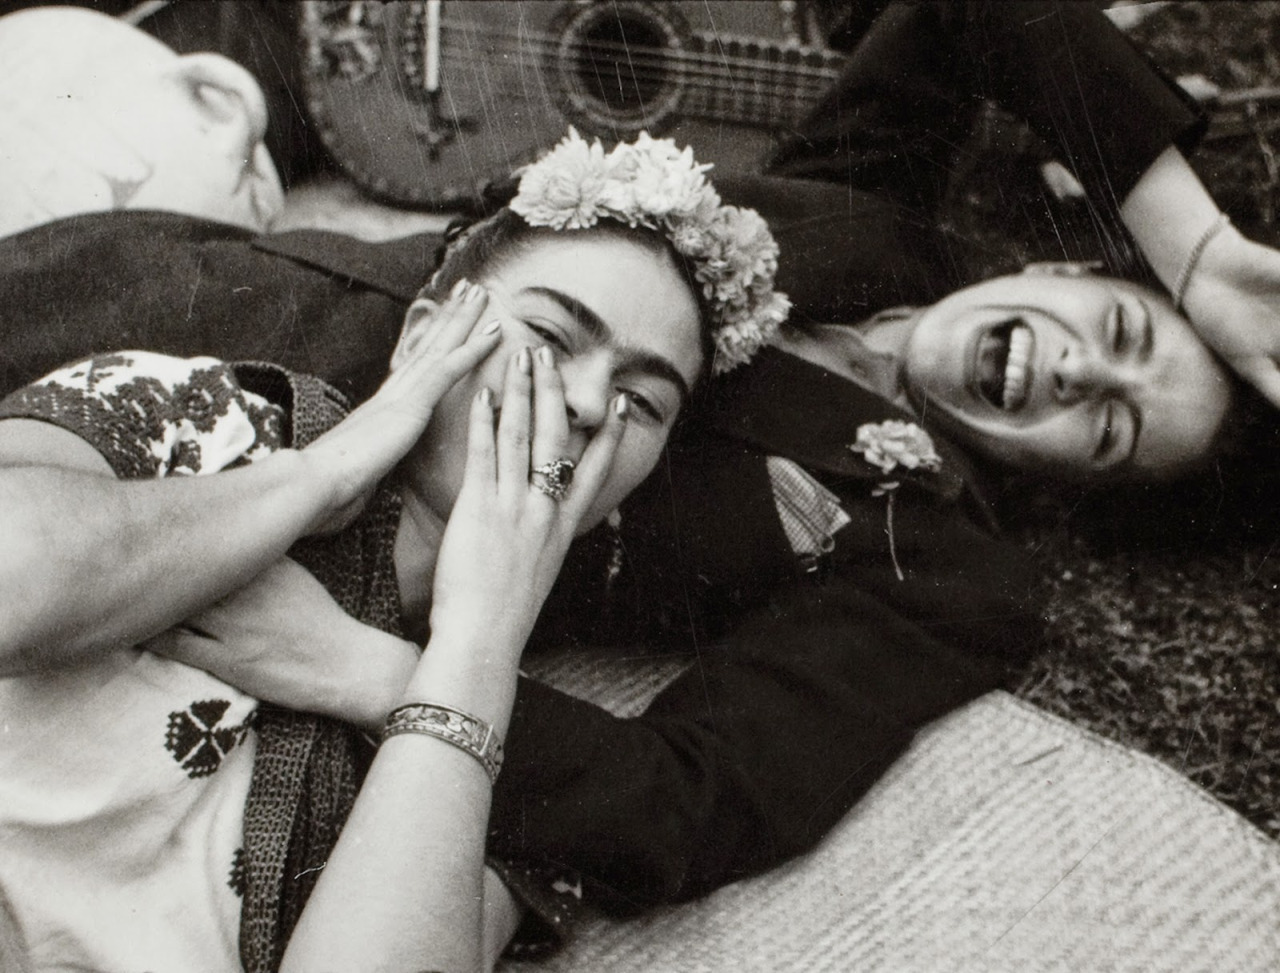 Kahlo and Chavela Vargas by Tina Modotti, 1950.